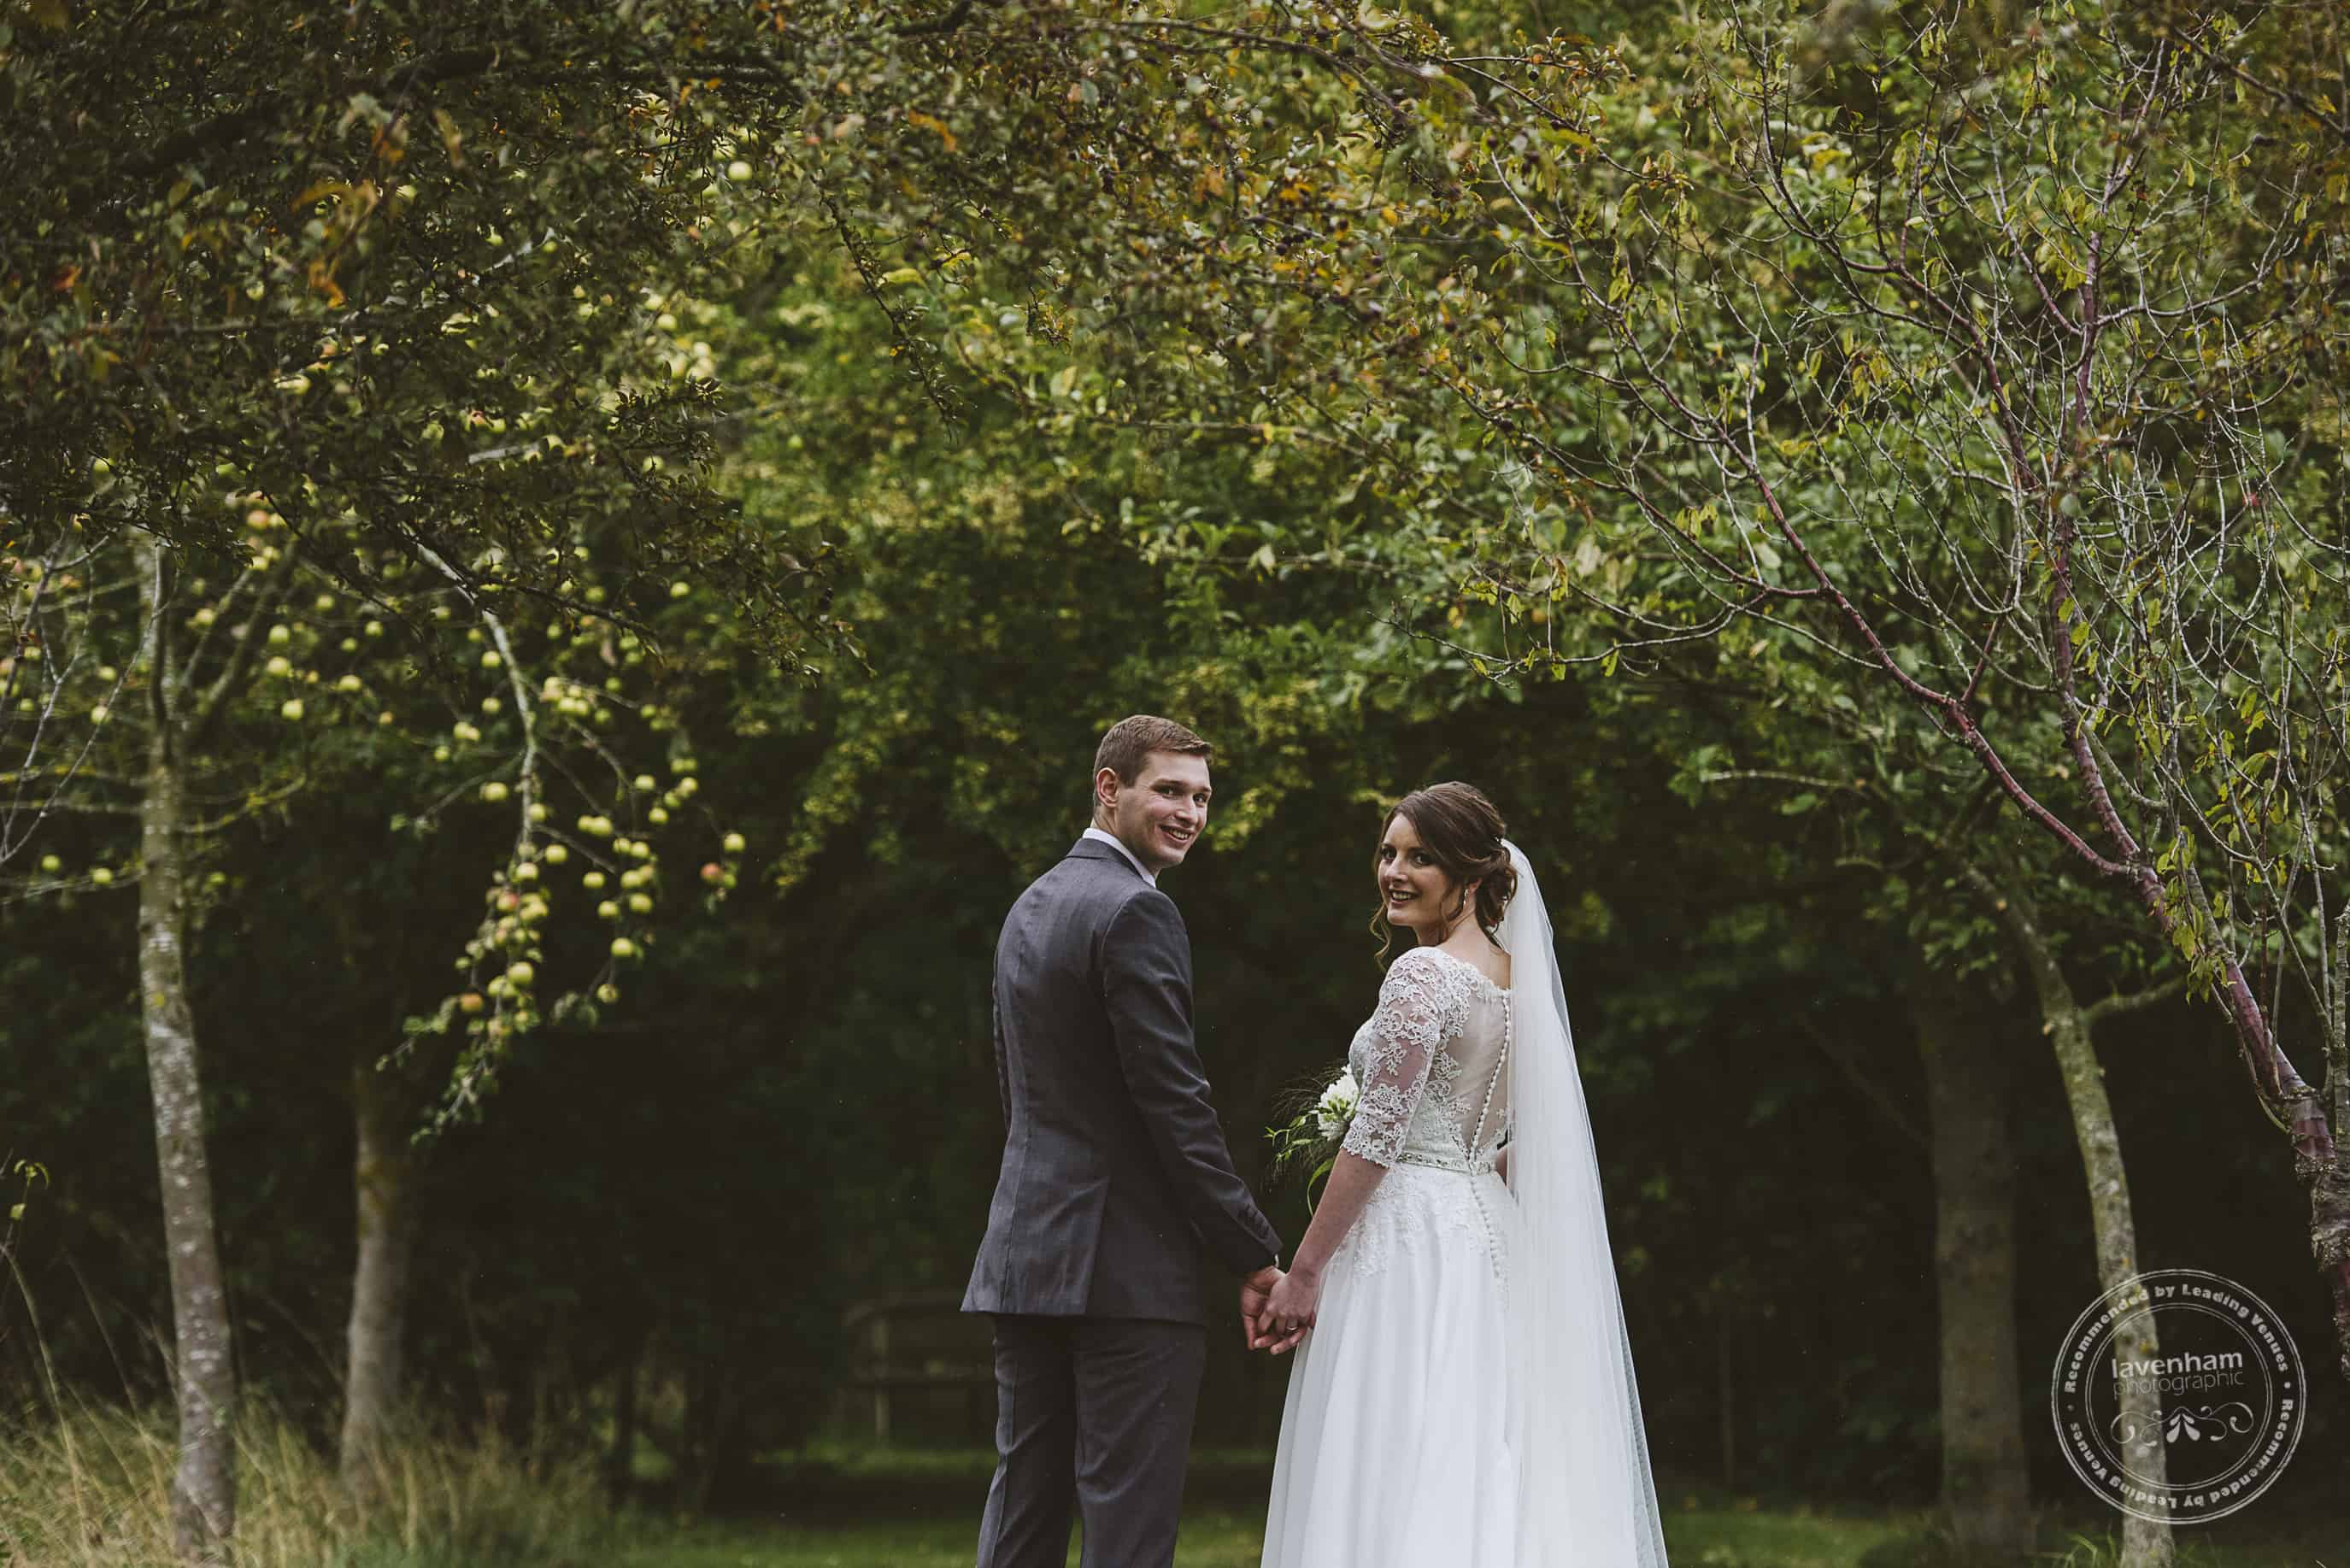 220918 Alpheton Barn Wedding Photography by Lavenham Photographic 100